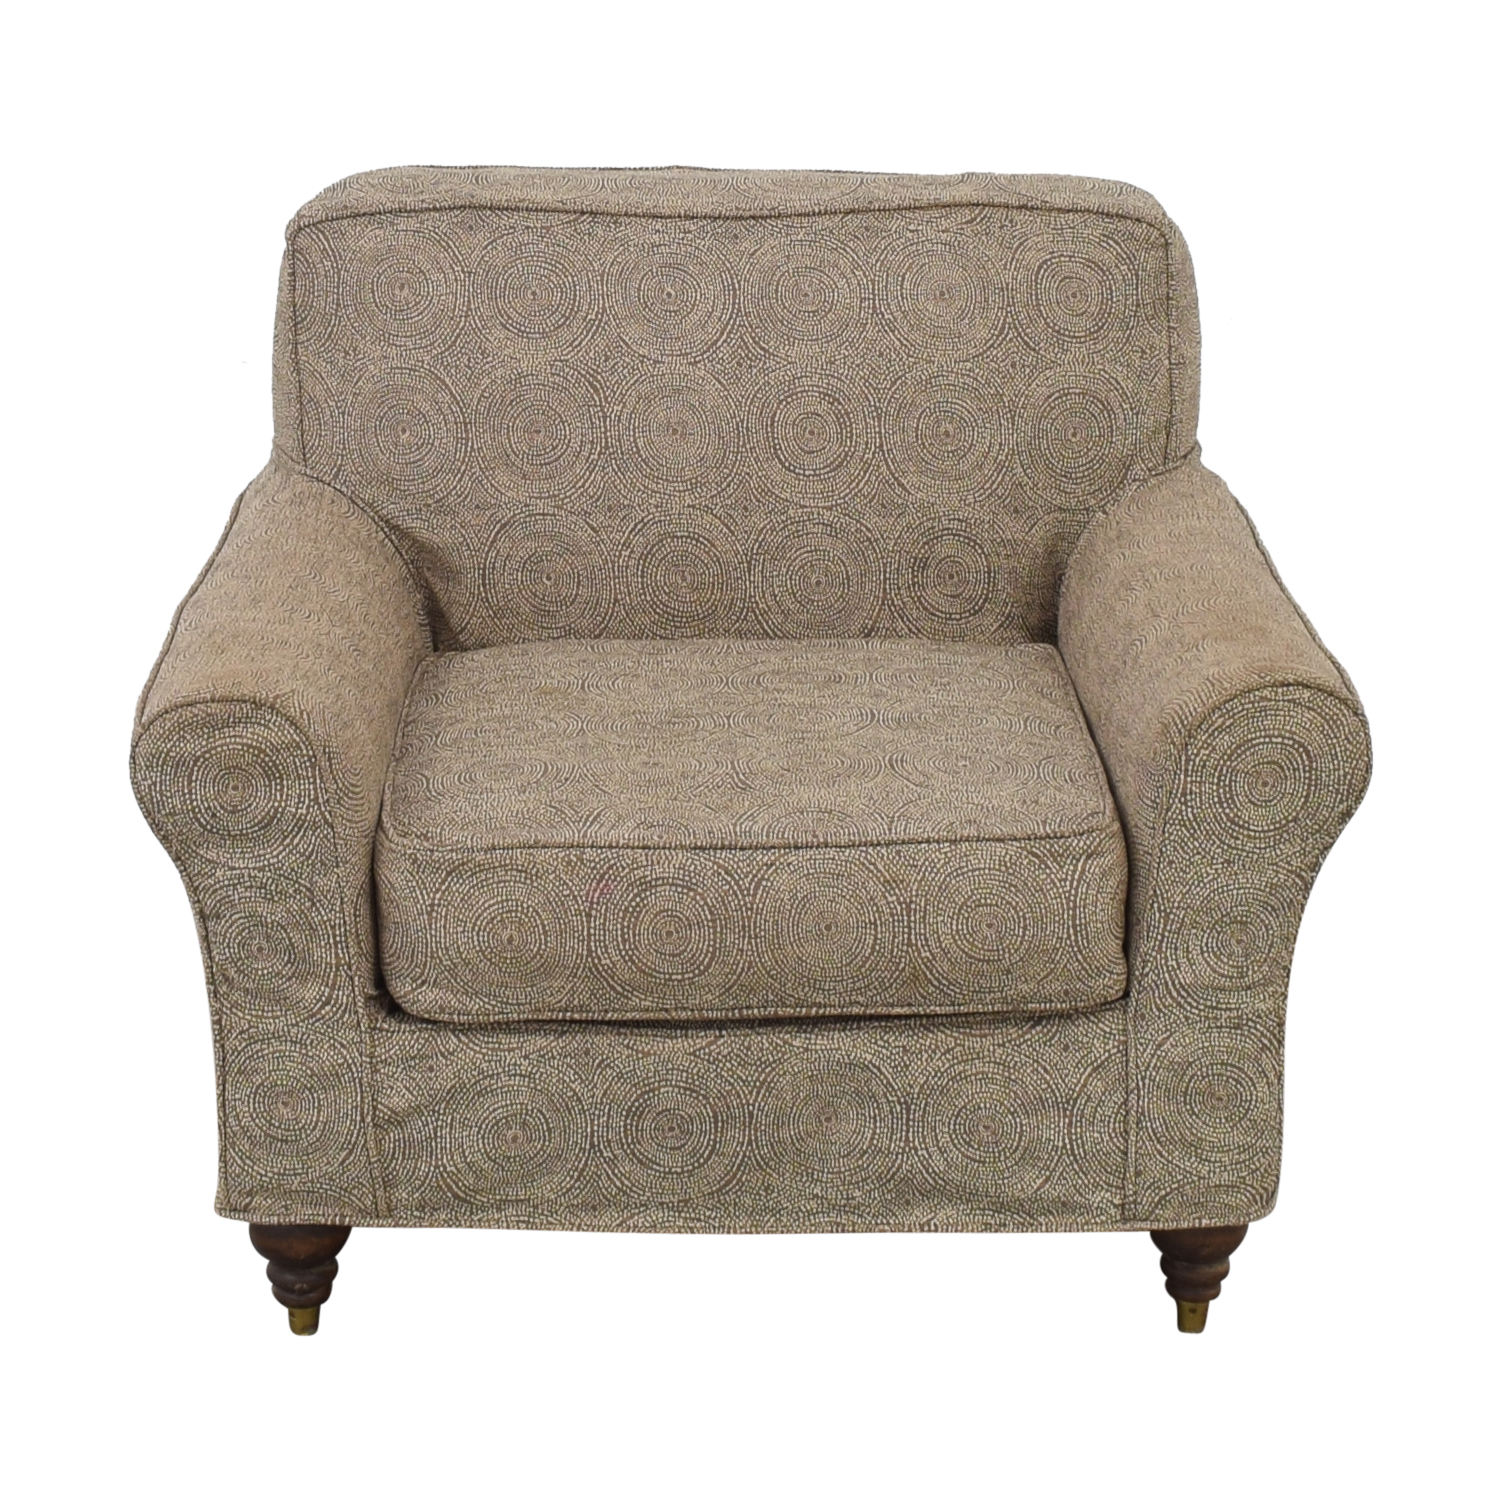 Ralph Lauren Home Ralph Lauren Home Slipcover Arm Chair price